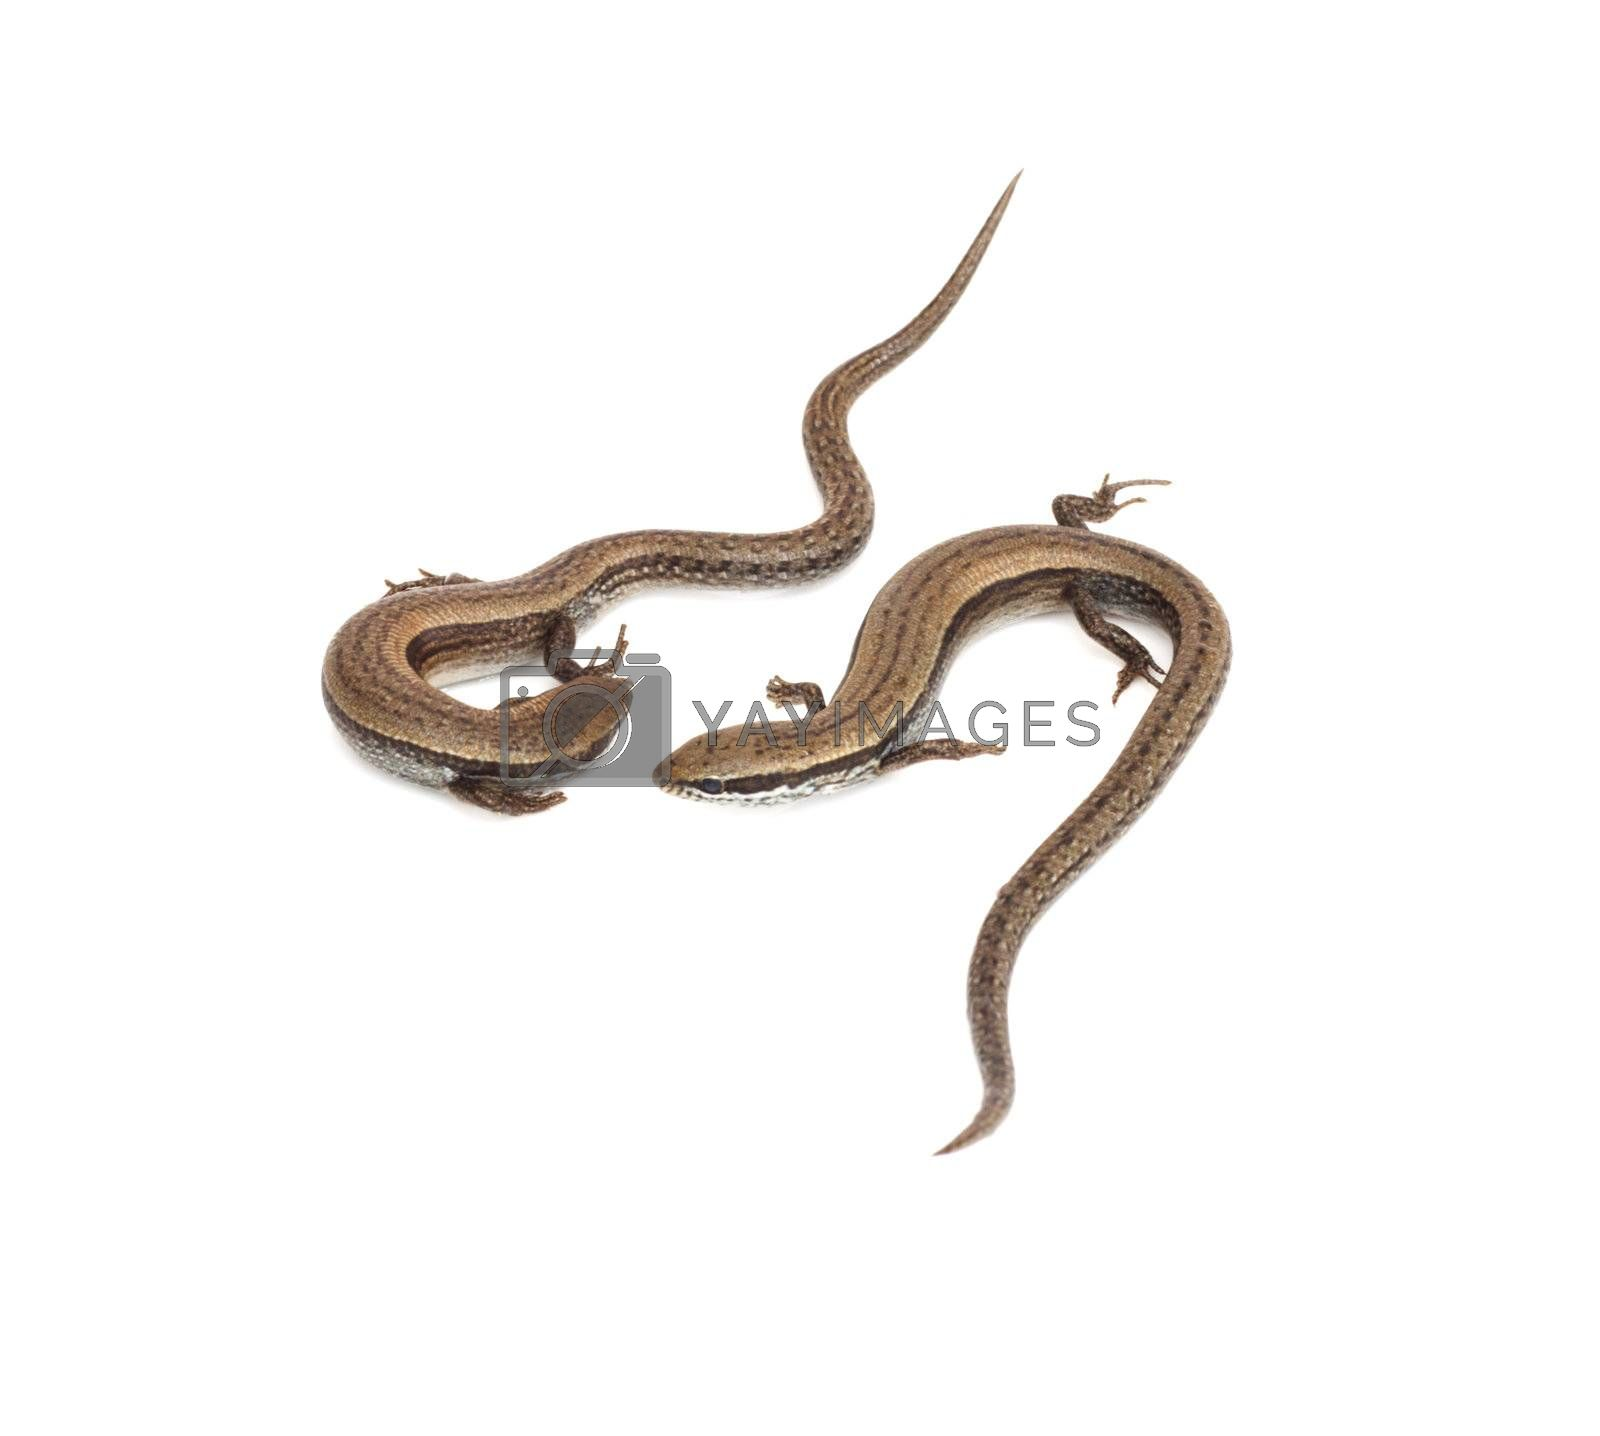 Two small lizards on a white background